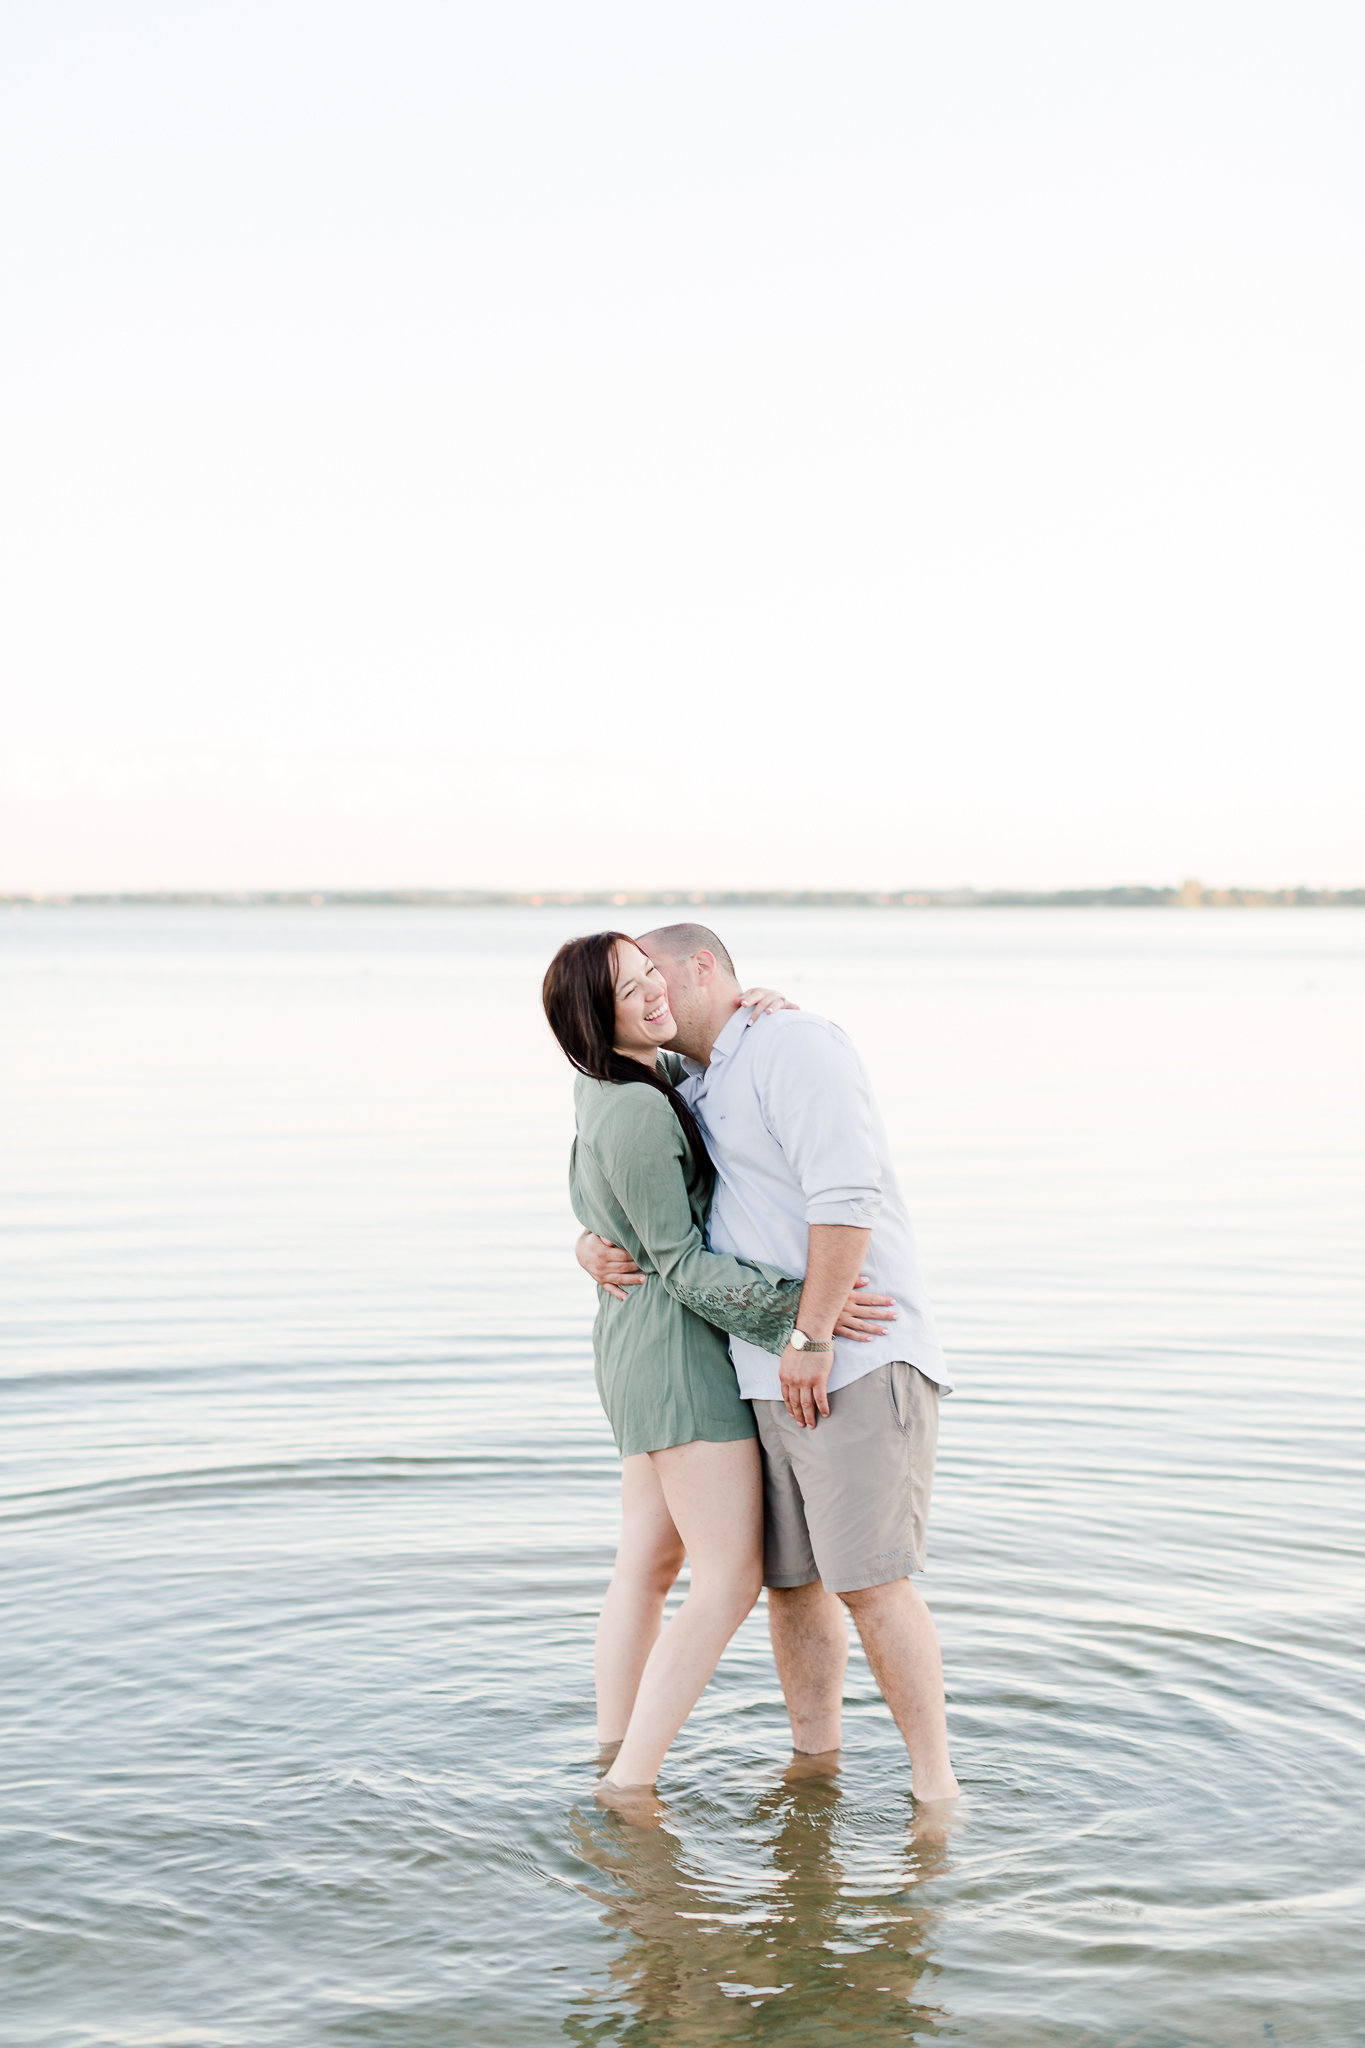 photographe-fiancailles-montreal-parc-national-oka-lisa-renault-photographie-beach-engagement-session-43